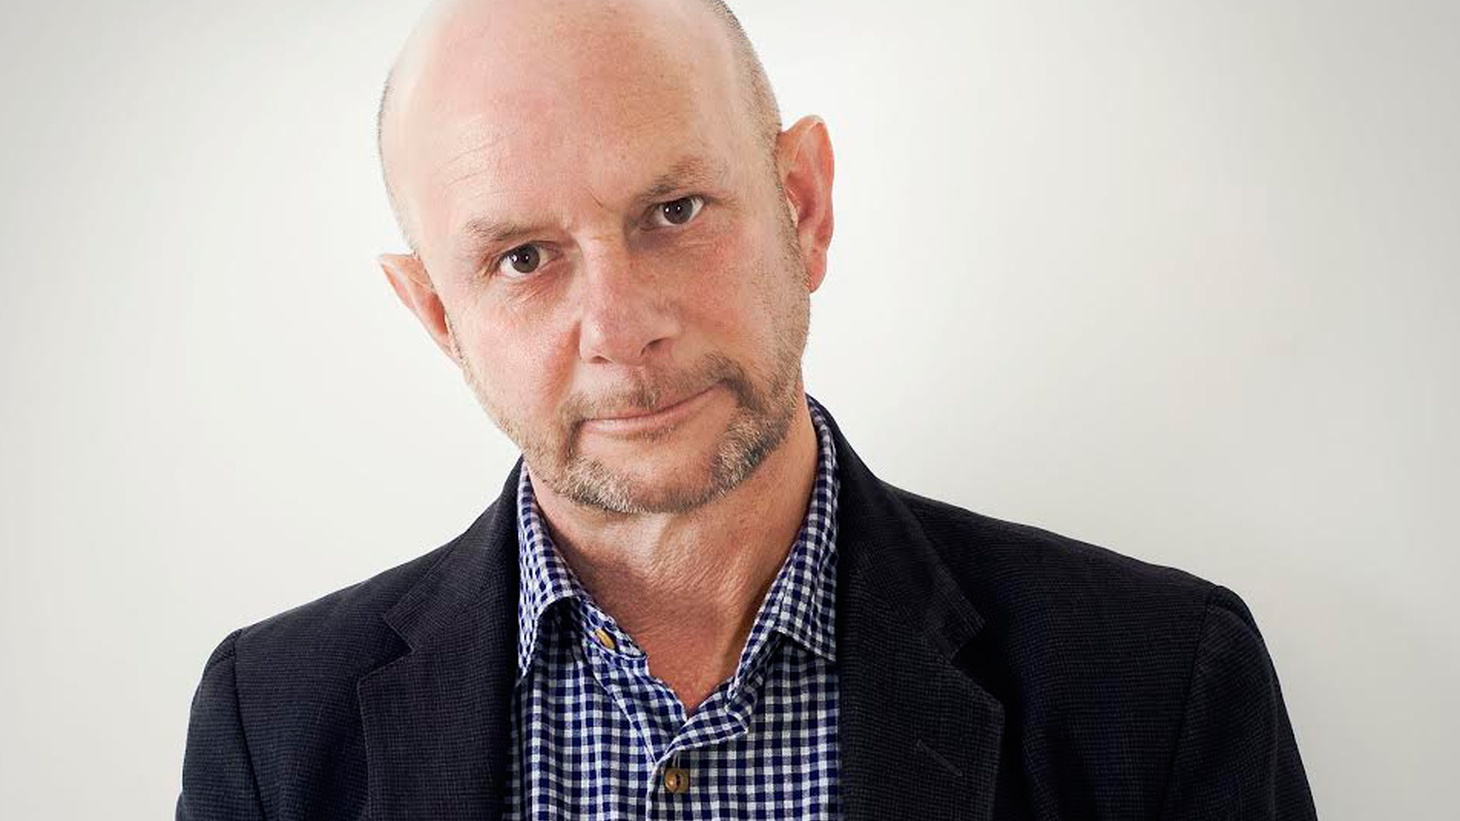 Nick Hornby has seen his novels like High Fidelity and About a Boy made into films. He's also adapted other writers' work for movies, including An Education, Wild, and now, Brooklyn, an immigrant love story already generating Oscar buzz.